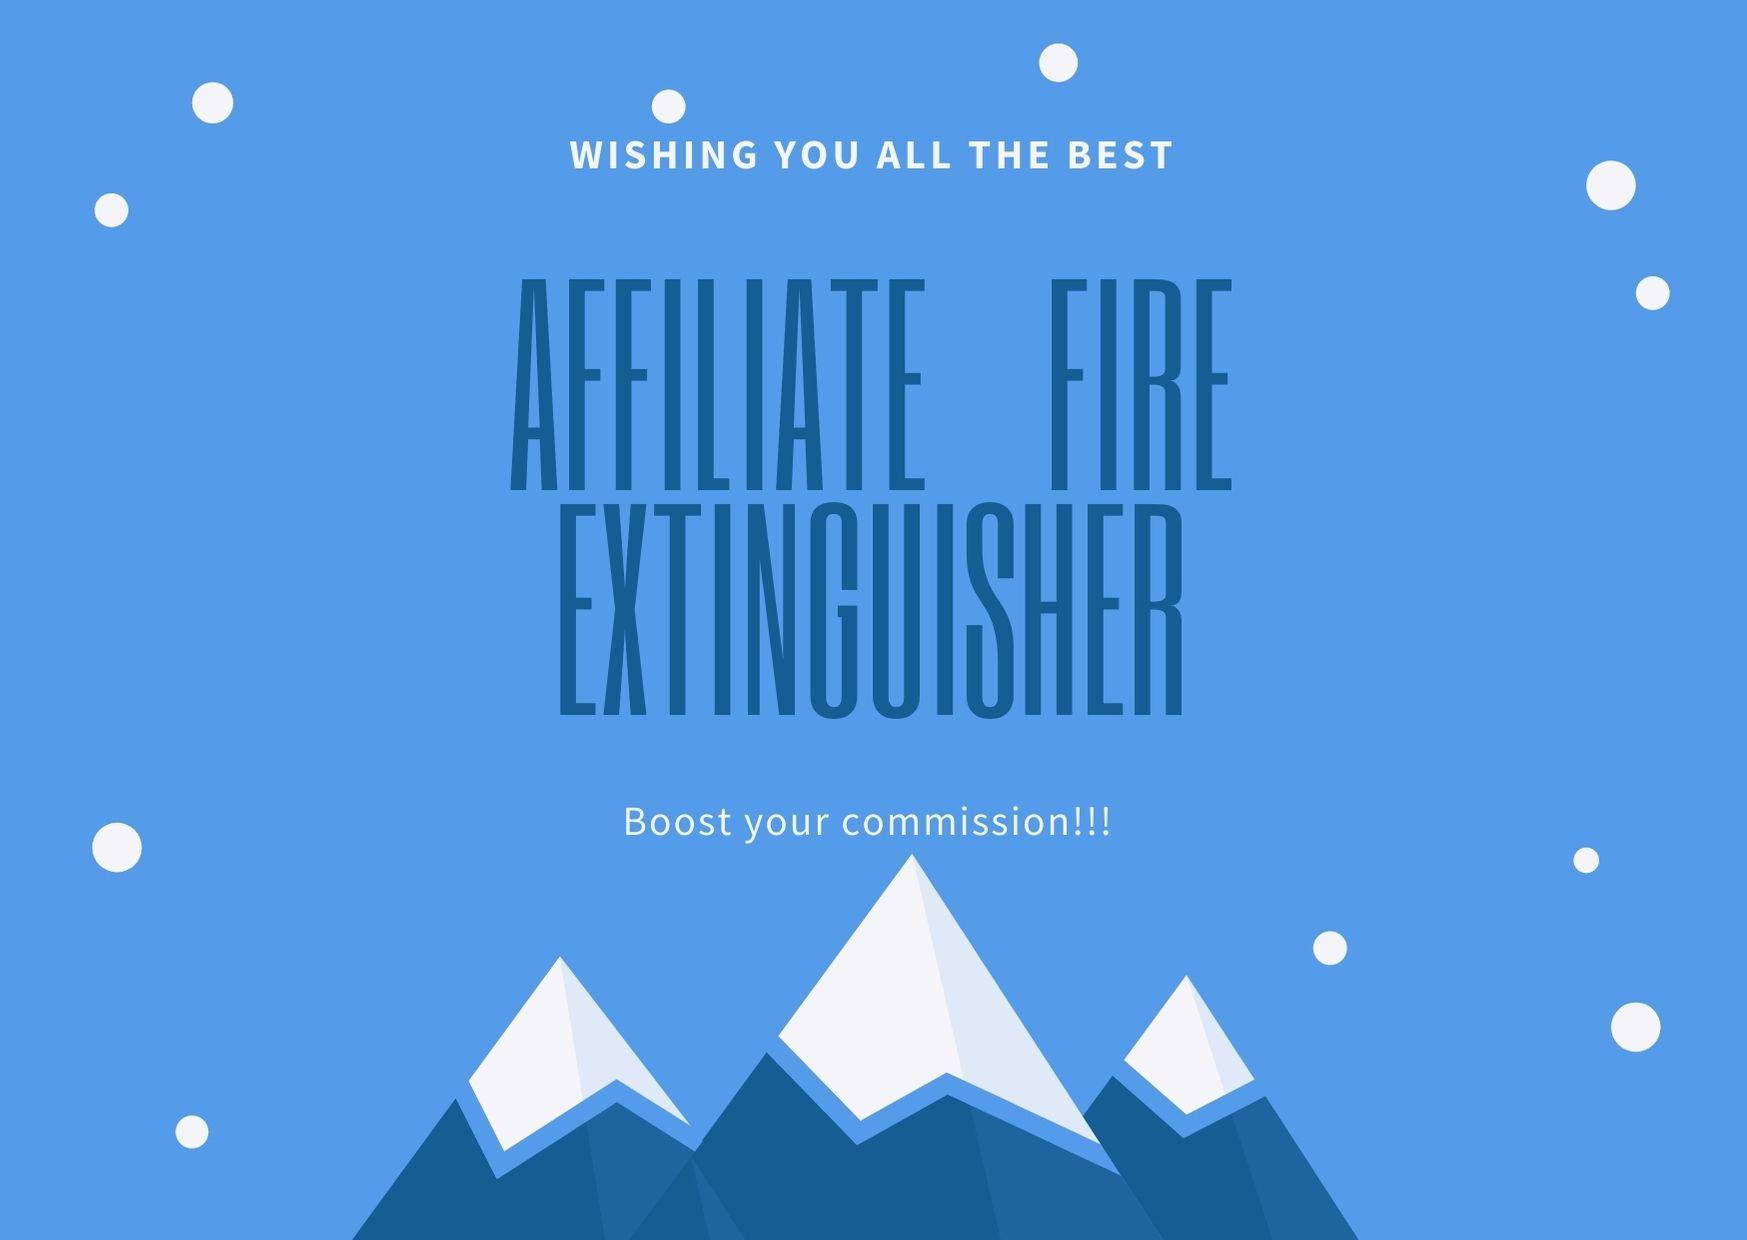 AFFILIATE FIRE EXTINGUISHER - boost your product sale and commission